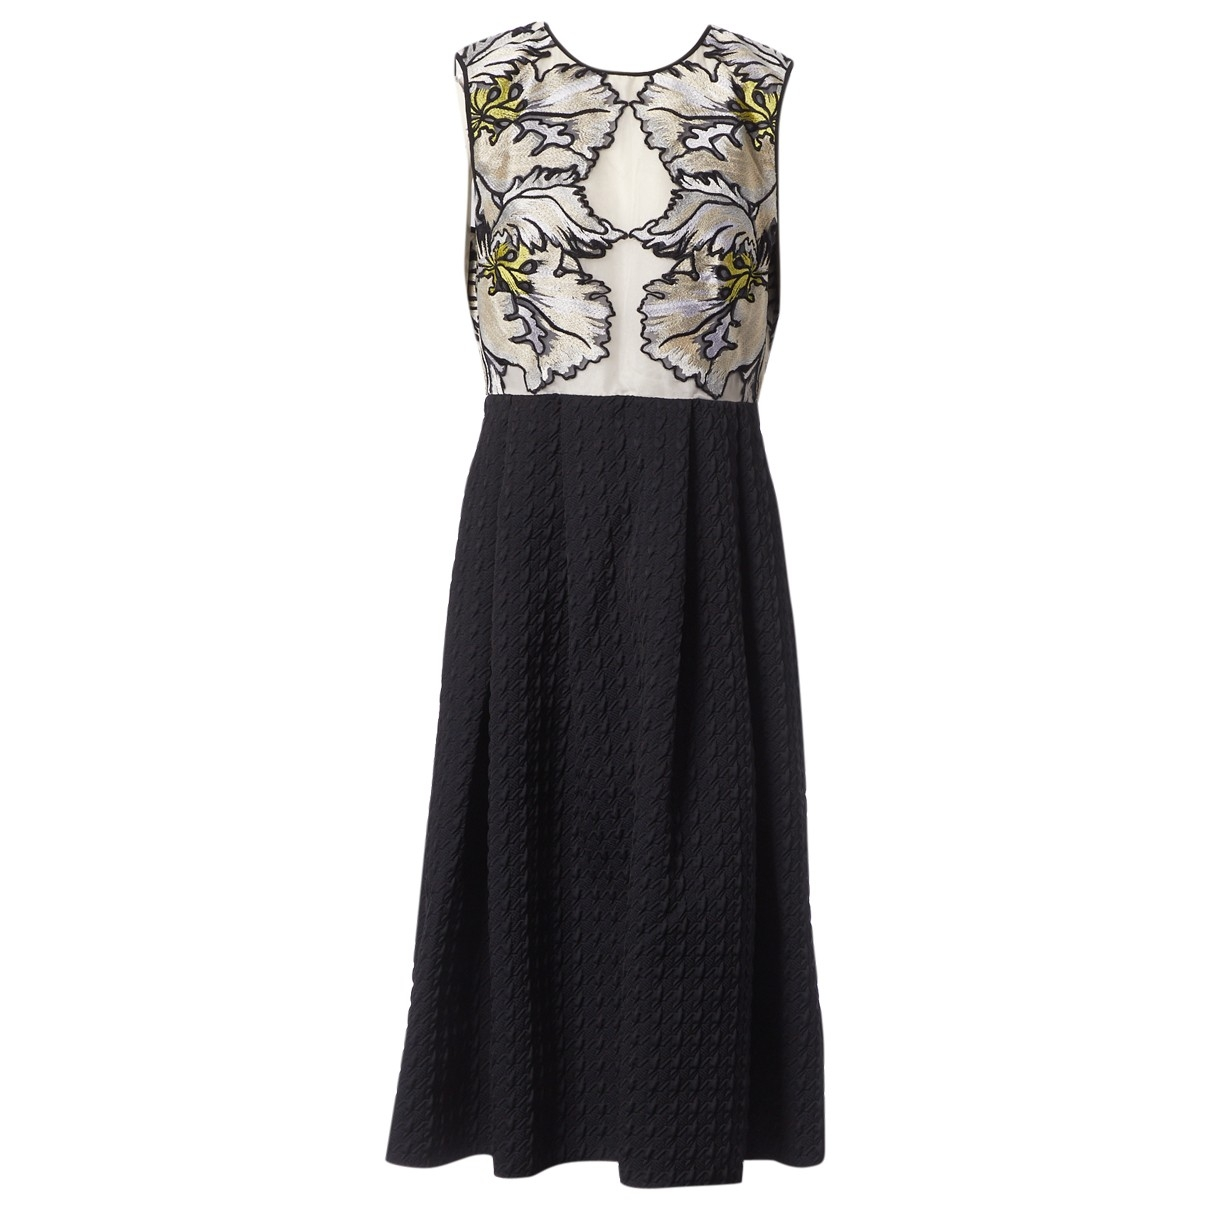 Erdem \N Black dress for Women 12 UK